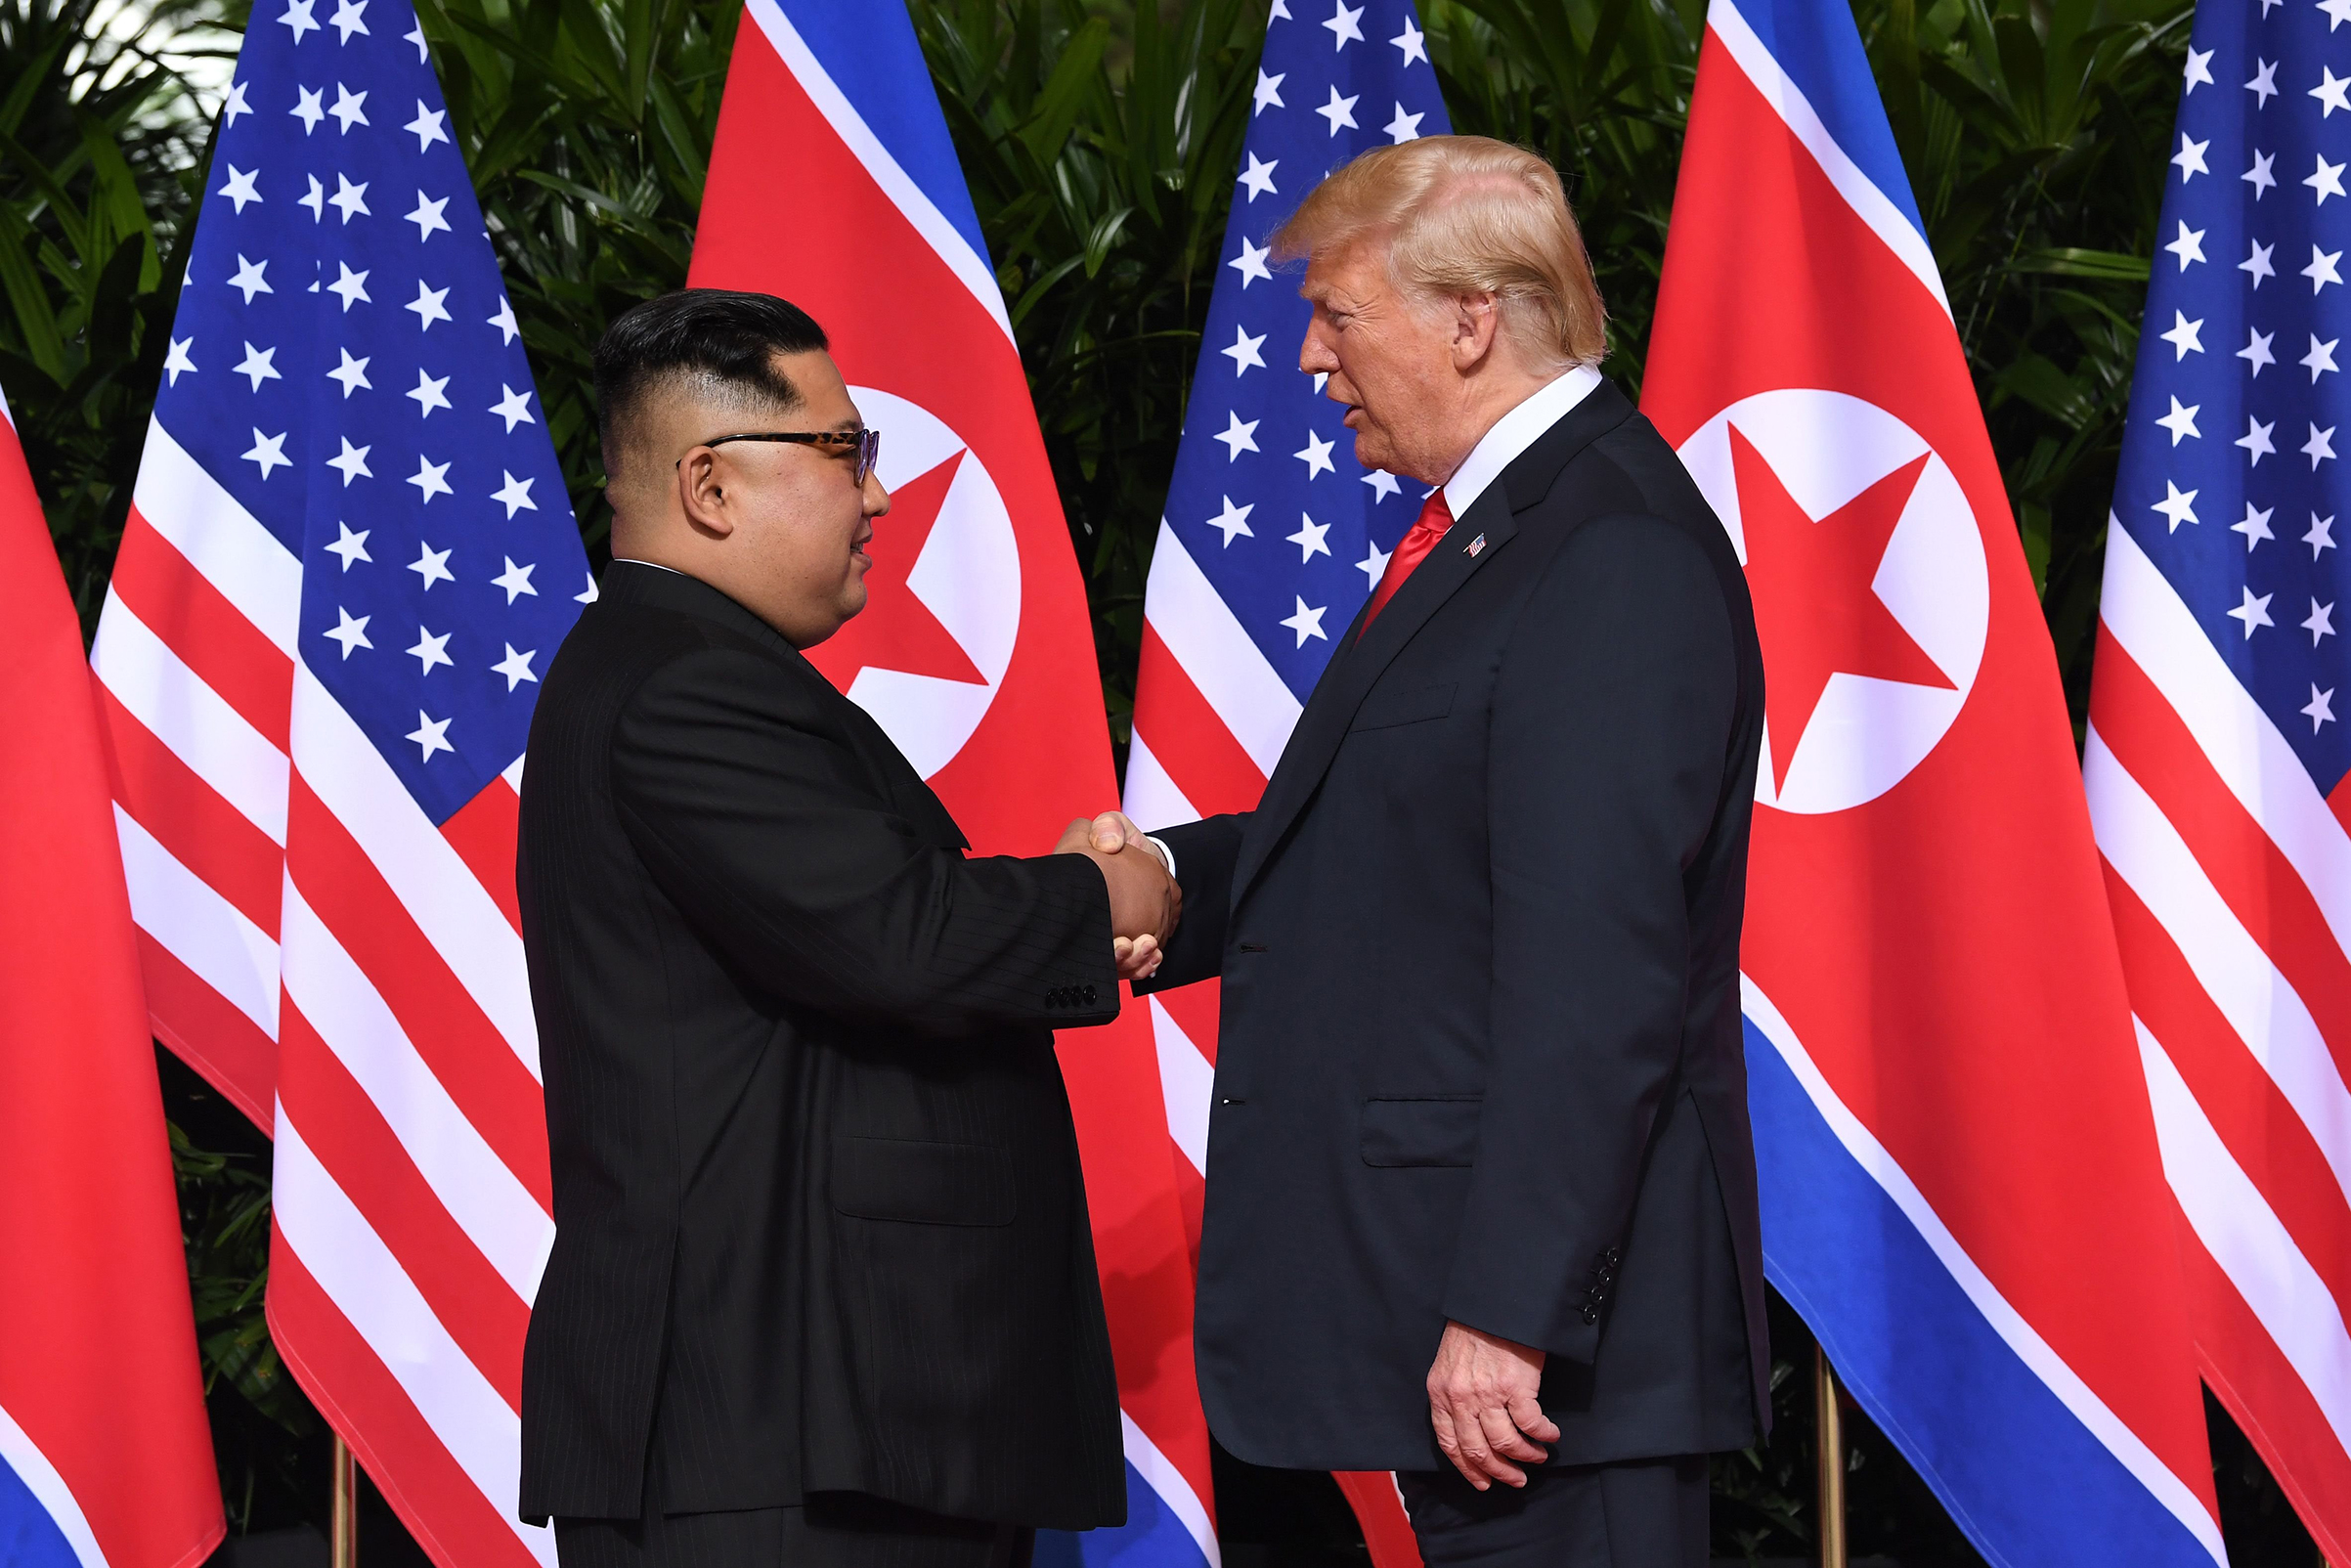 North Korean leader Kim Jong Un and President Trump shake hands at the start of their historic summit at the Capella Hotel on Sentosa island in Singapore on June 12, 2018.